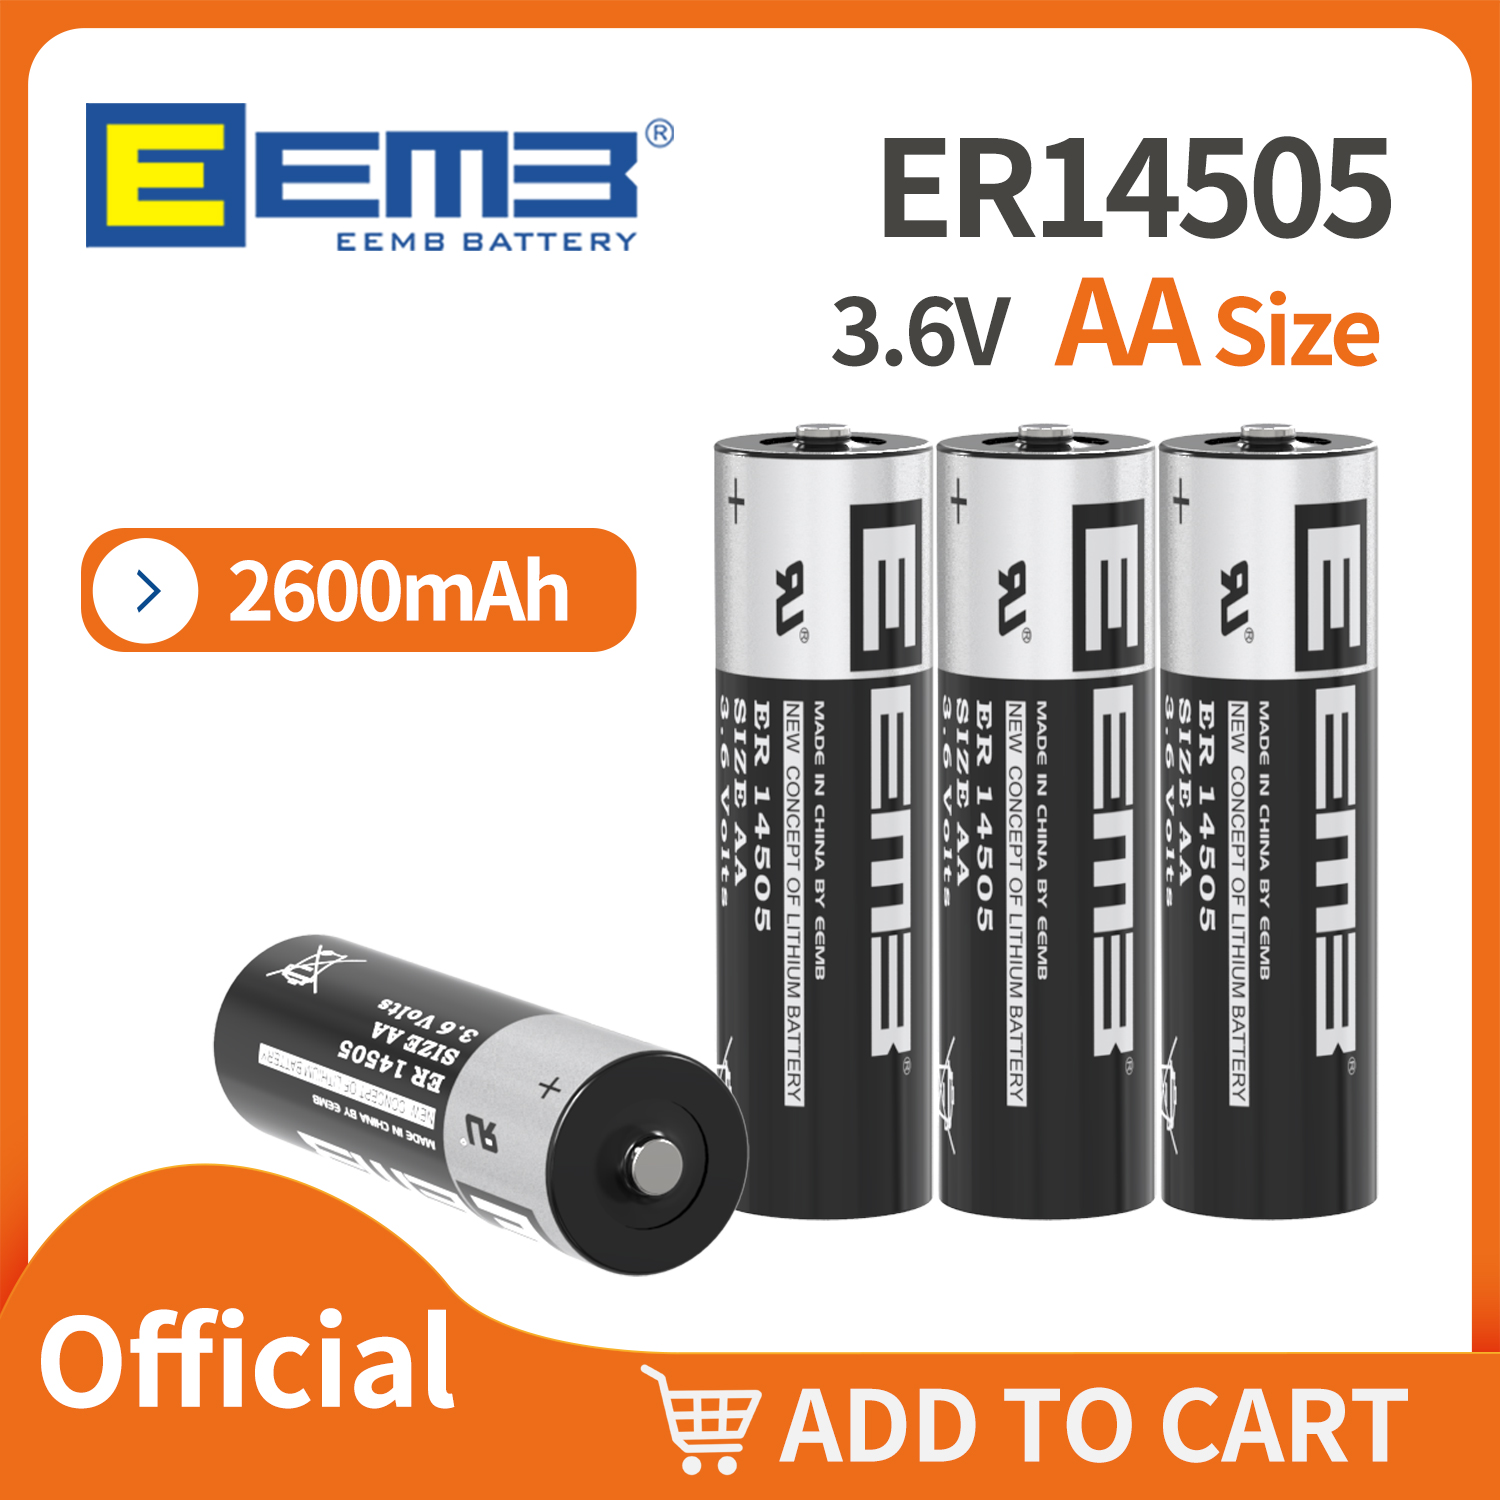 Official Store EEMB er14505 3,6 V AA Battery 2600 mAh PLC Lithium Batteries for Toys Camera Flashlight Non-rechargeable